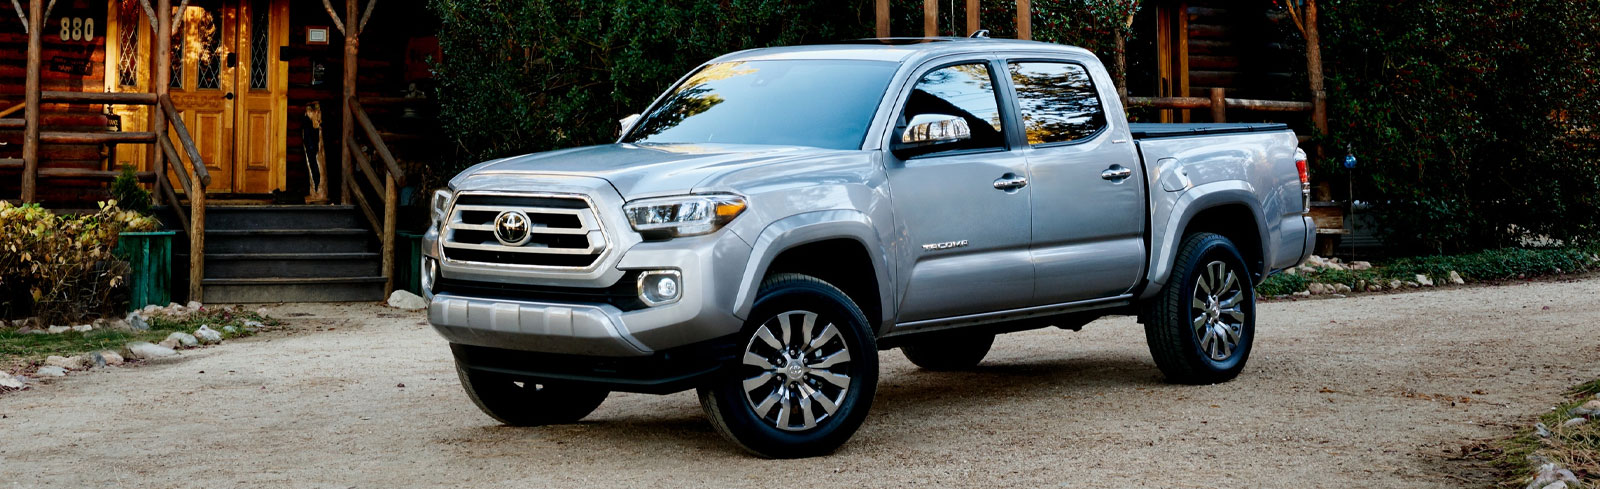 2020 Toyota Tacoma Truck in Cleveland, OH, at Motorcars Toyota